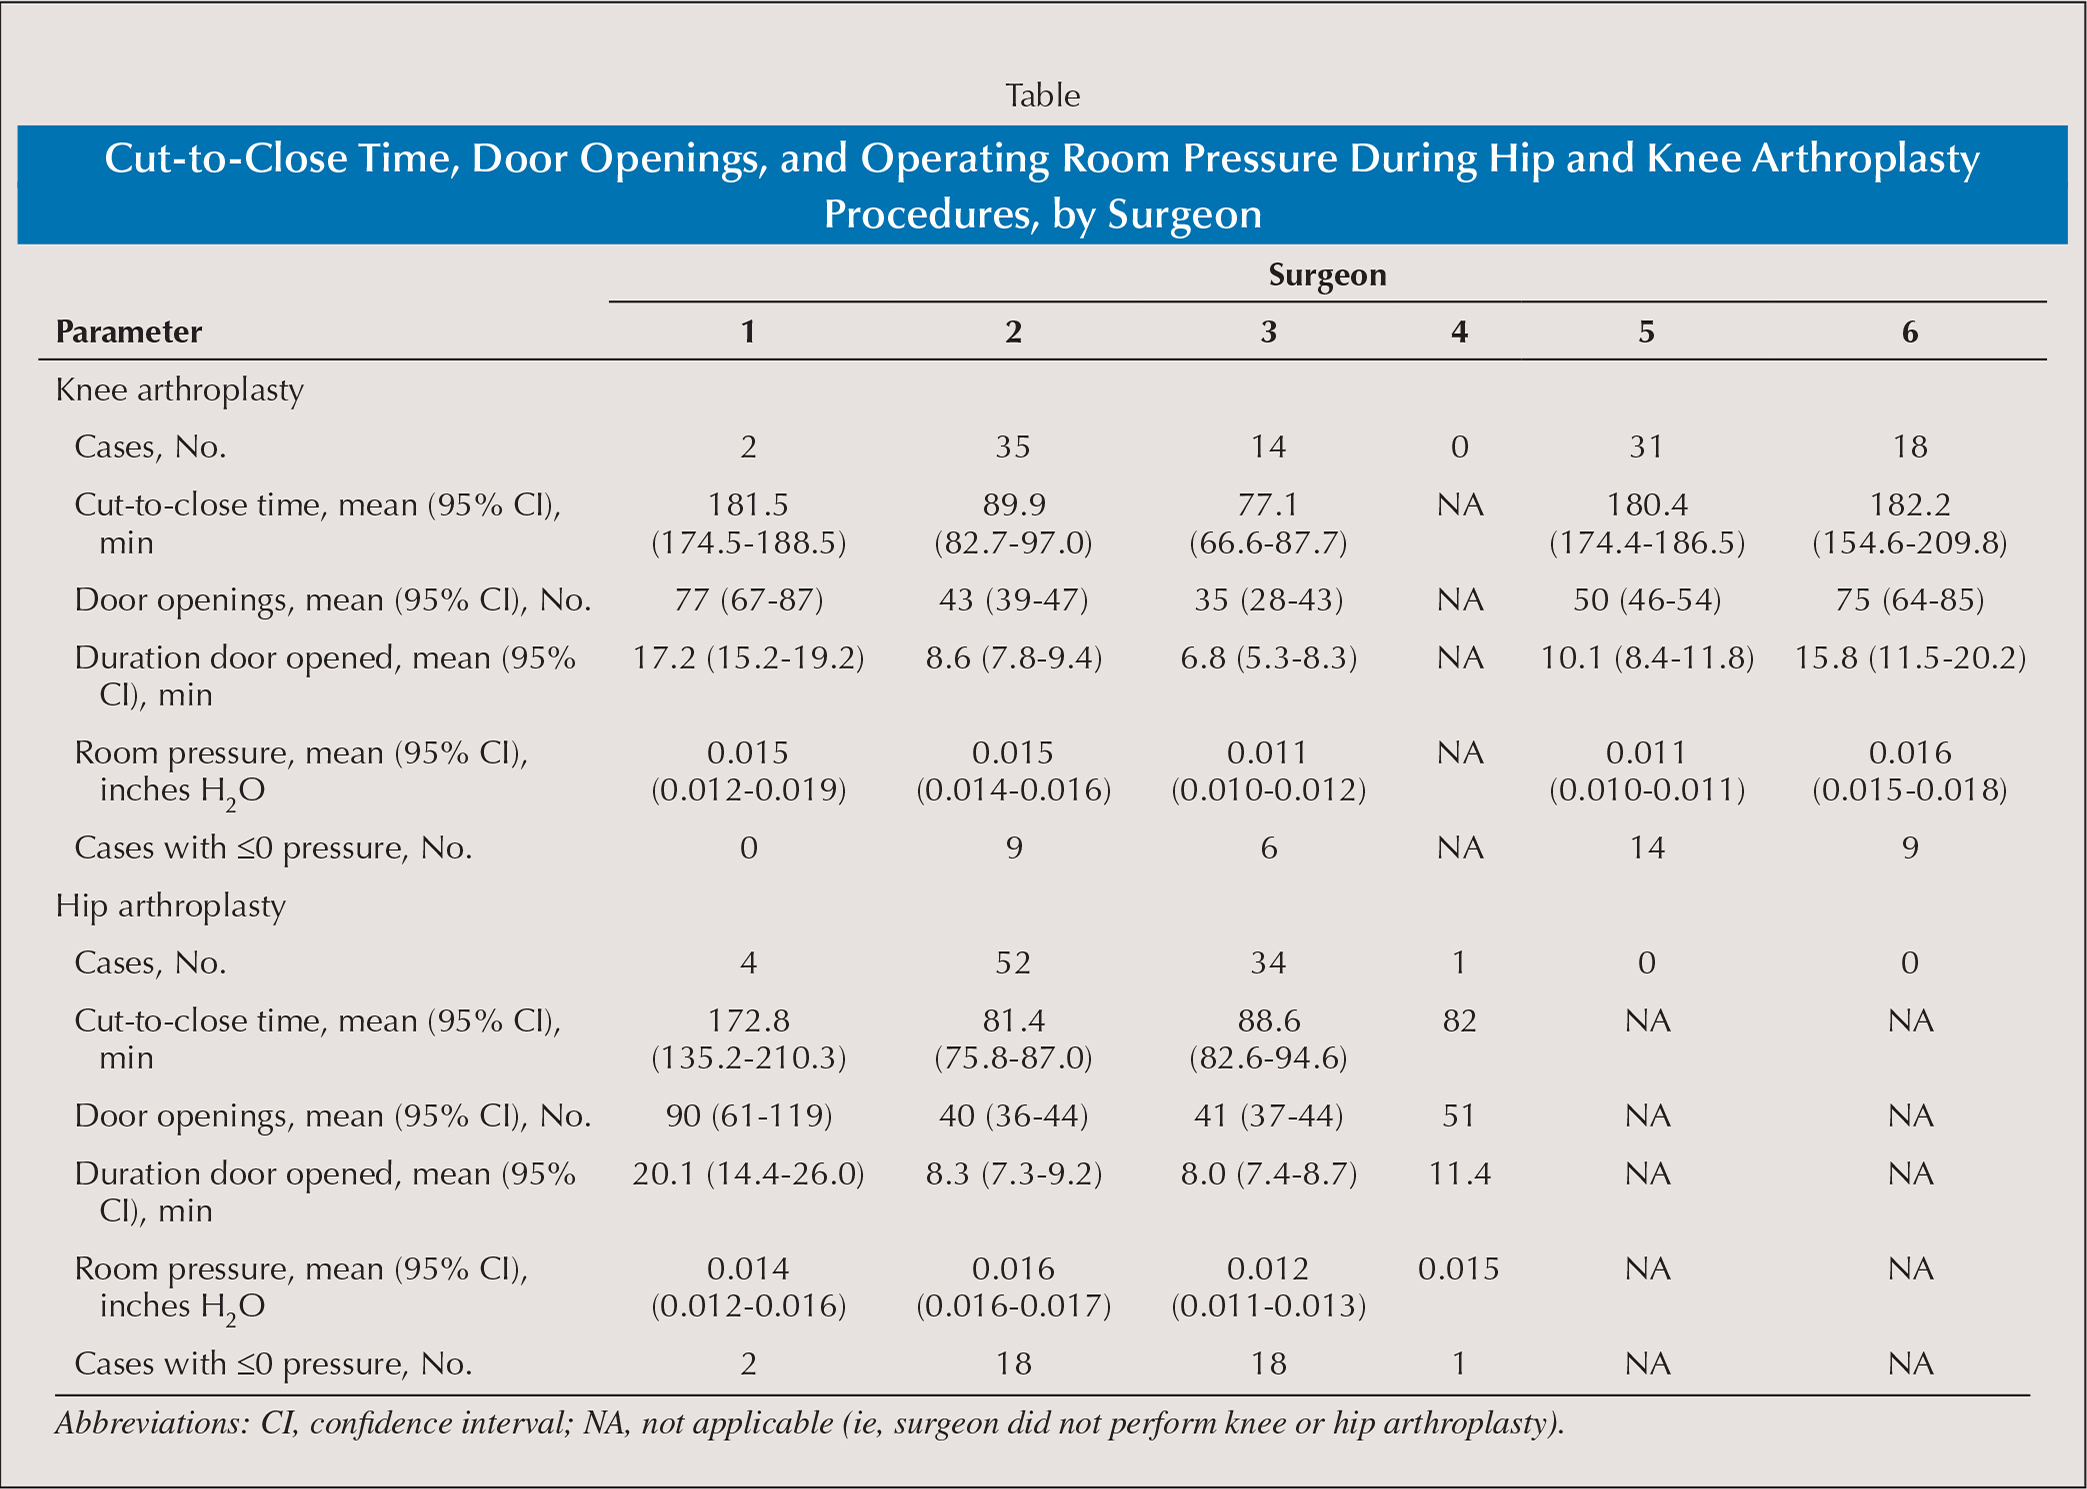 Cut-to-Close Time, Door Openings, and Operating Room Pressure During Hip and Knee Arthroplasty Procedures, by Surgeon